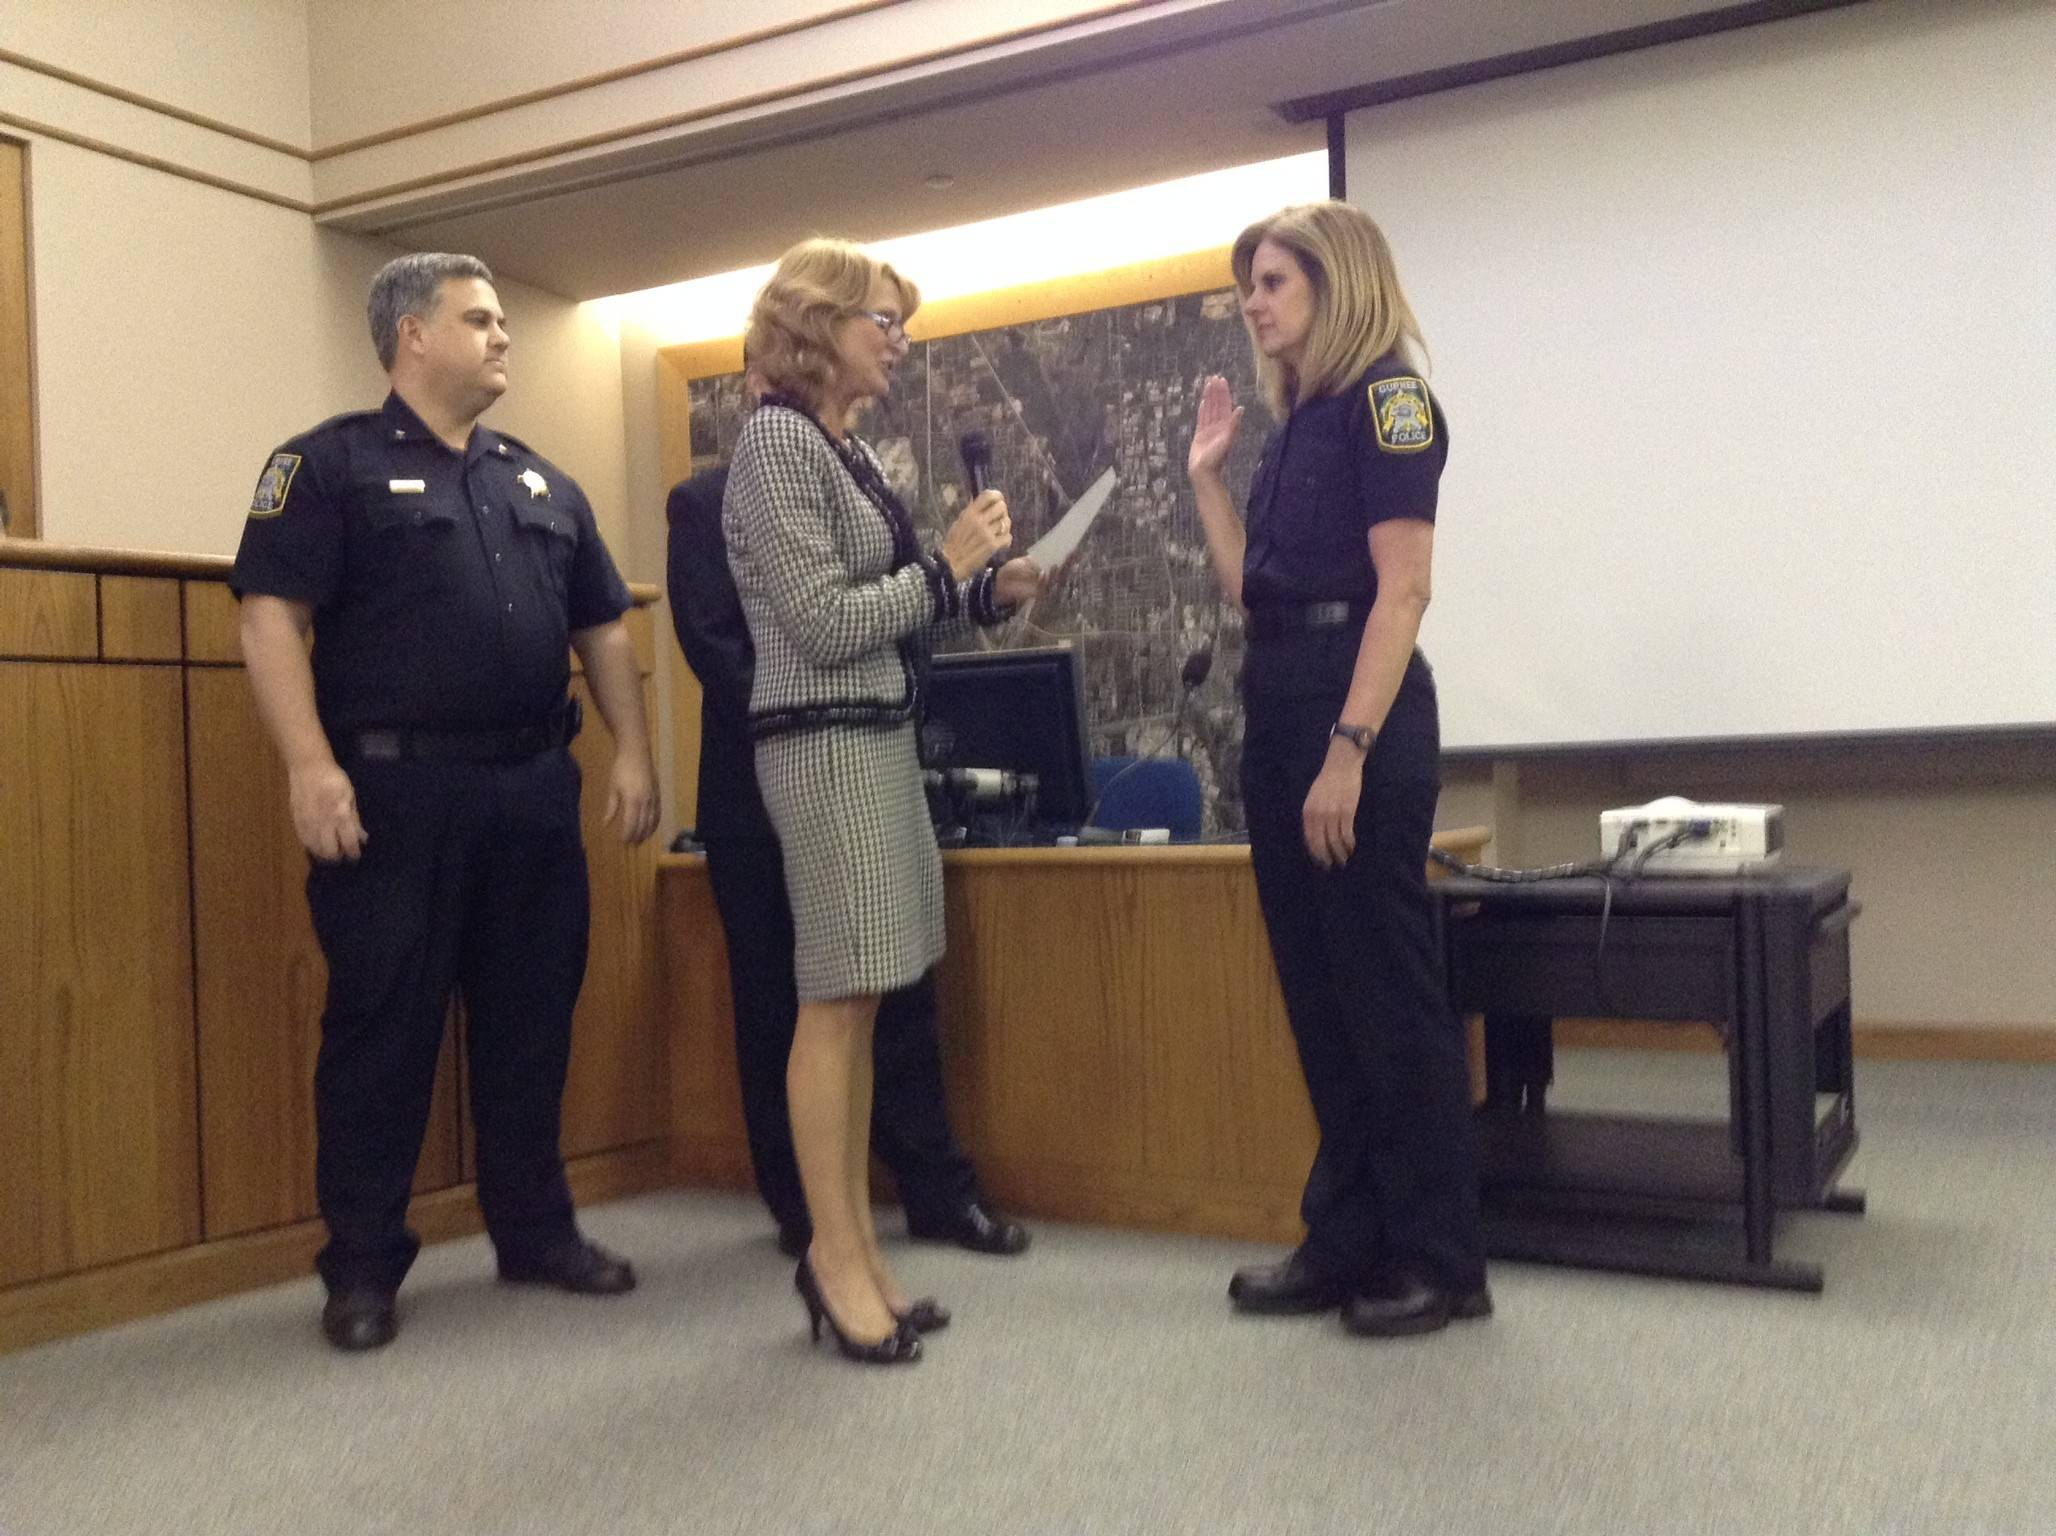 Gurnee Mayor Kristina Kovarik swears in Saundra Campbell as deputy police chief at Monday's village board meeting. Campbell was promoted from commander to deputy chief.